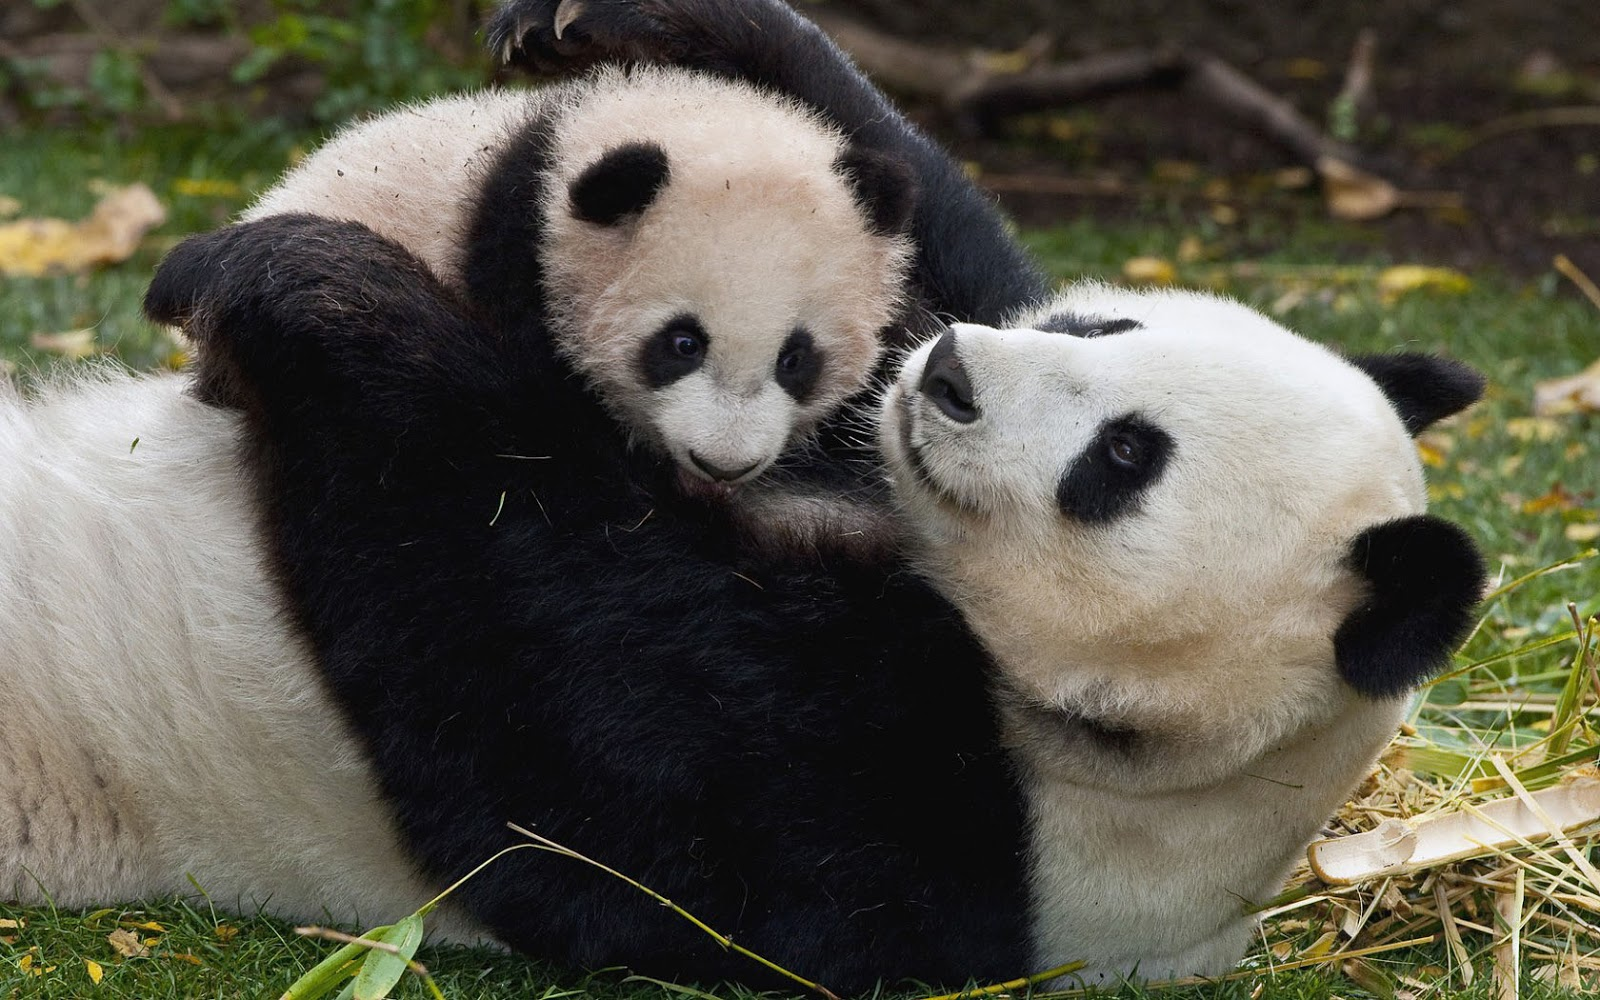 Cute Baby Panda Bears Wallpaper Images Pictures   Becuo 1600x1000